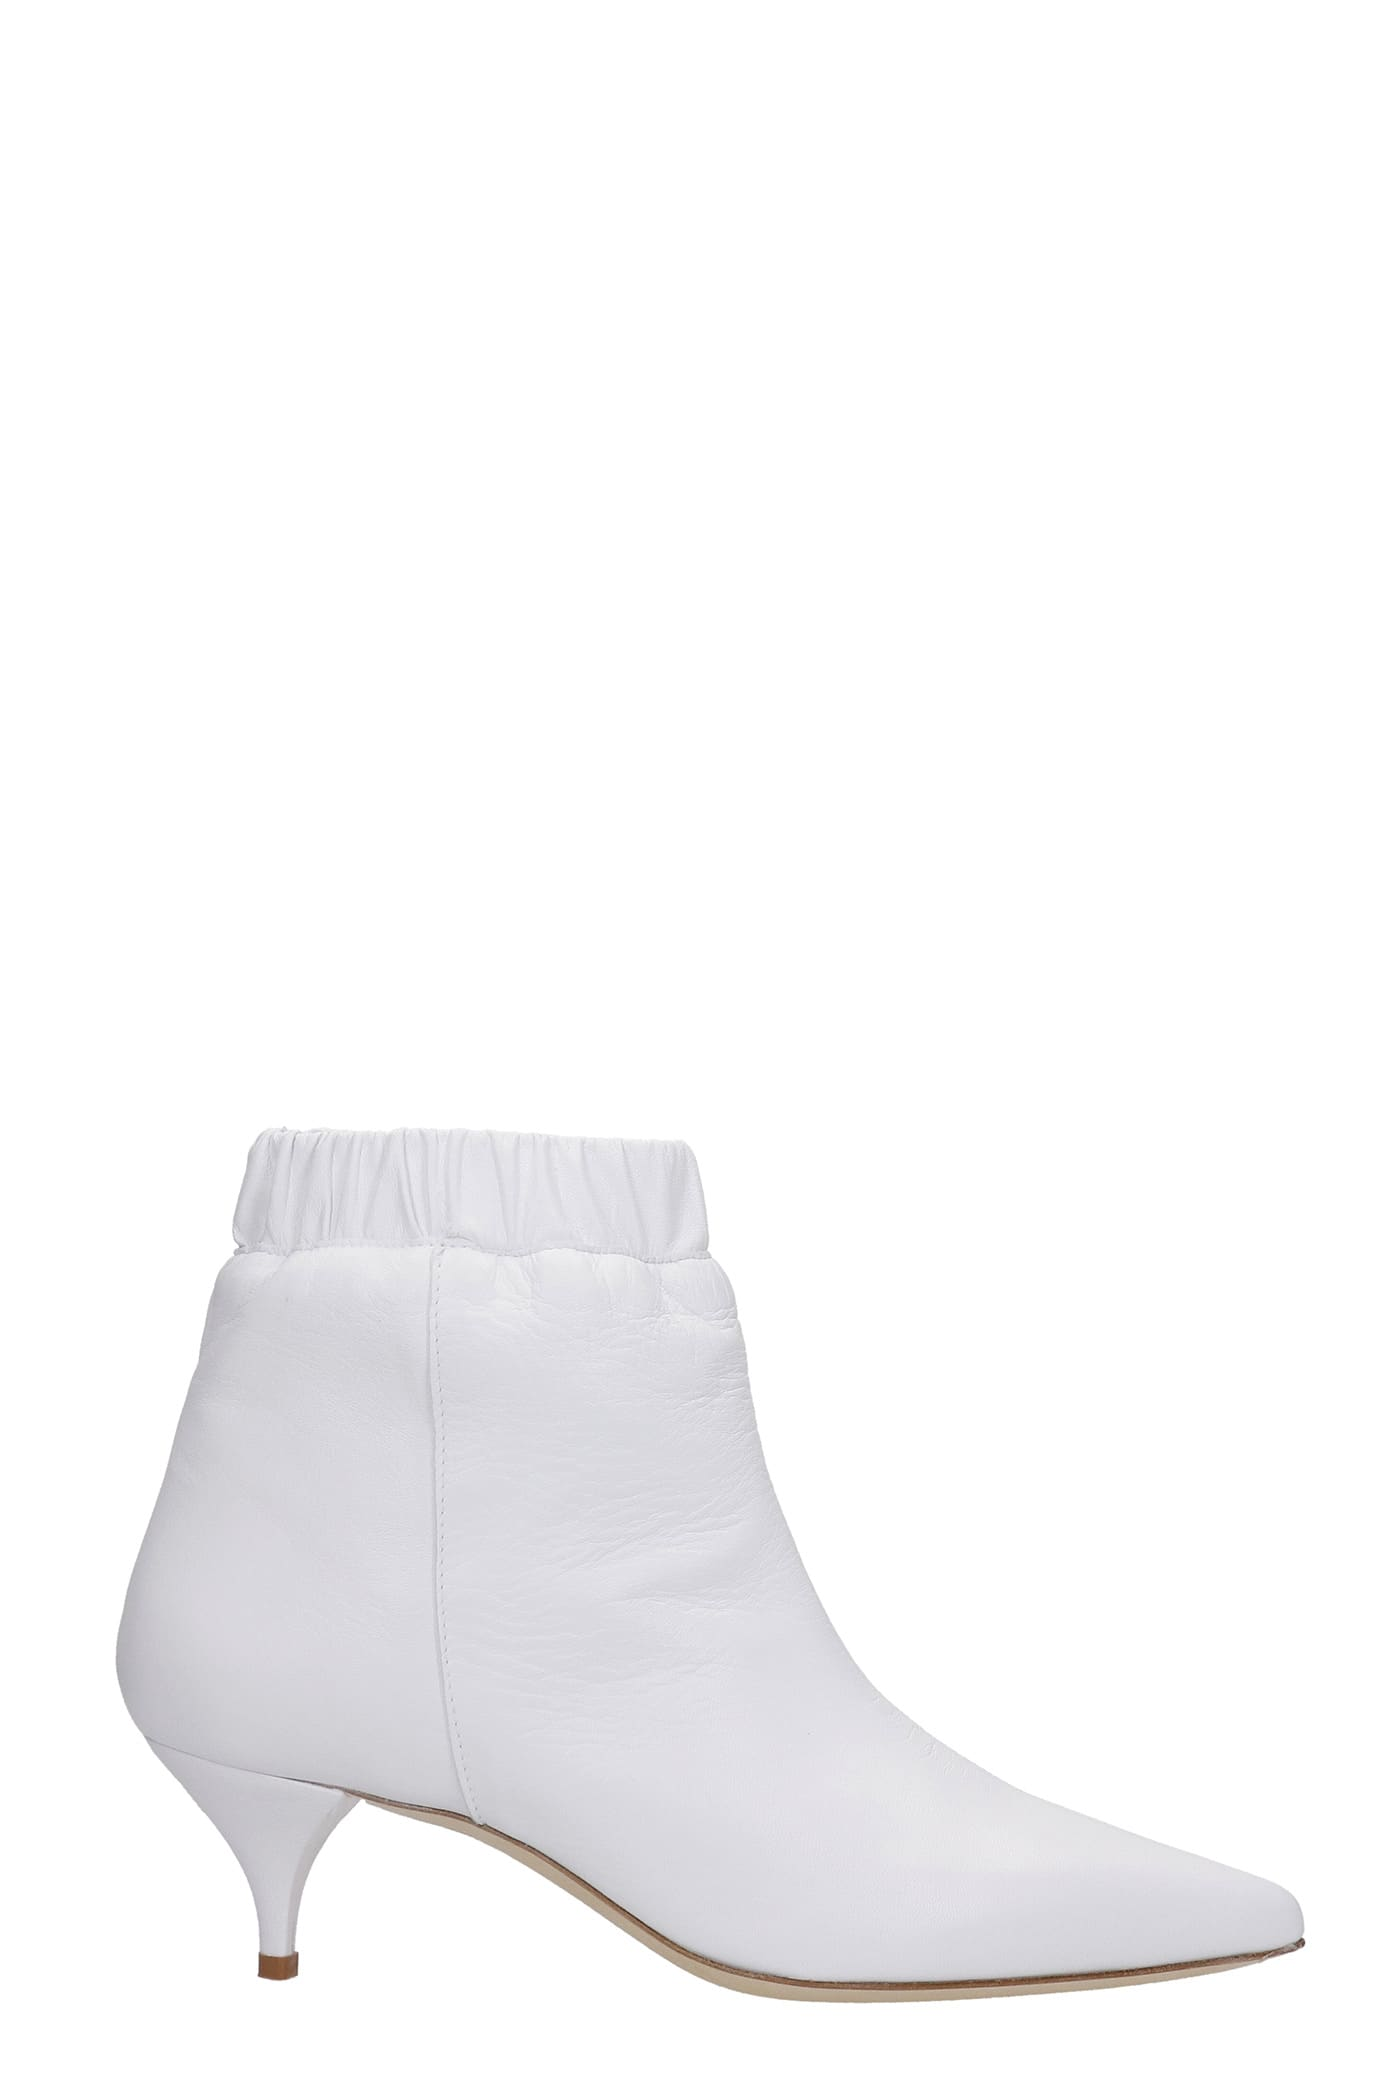 Low Heels Ankle Boots In White Leather